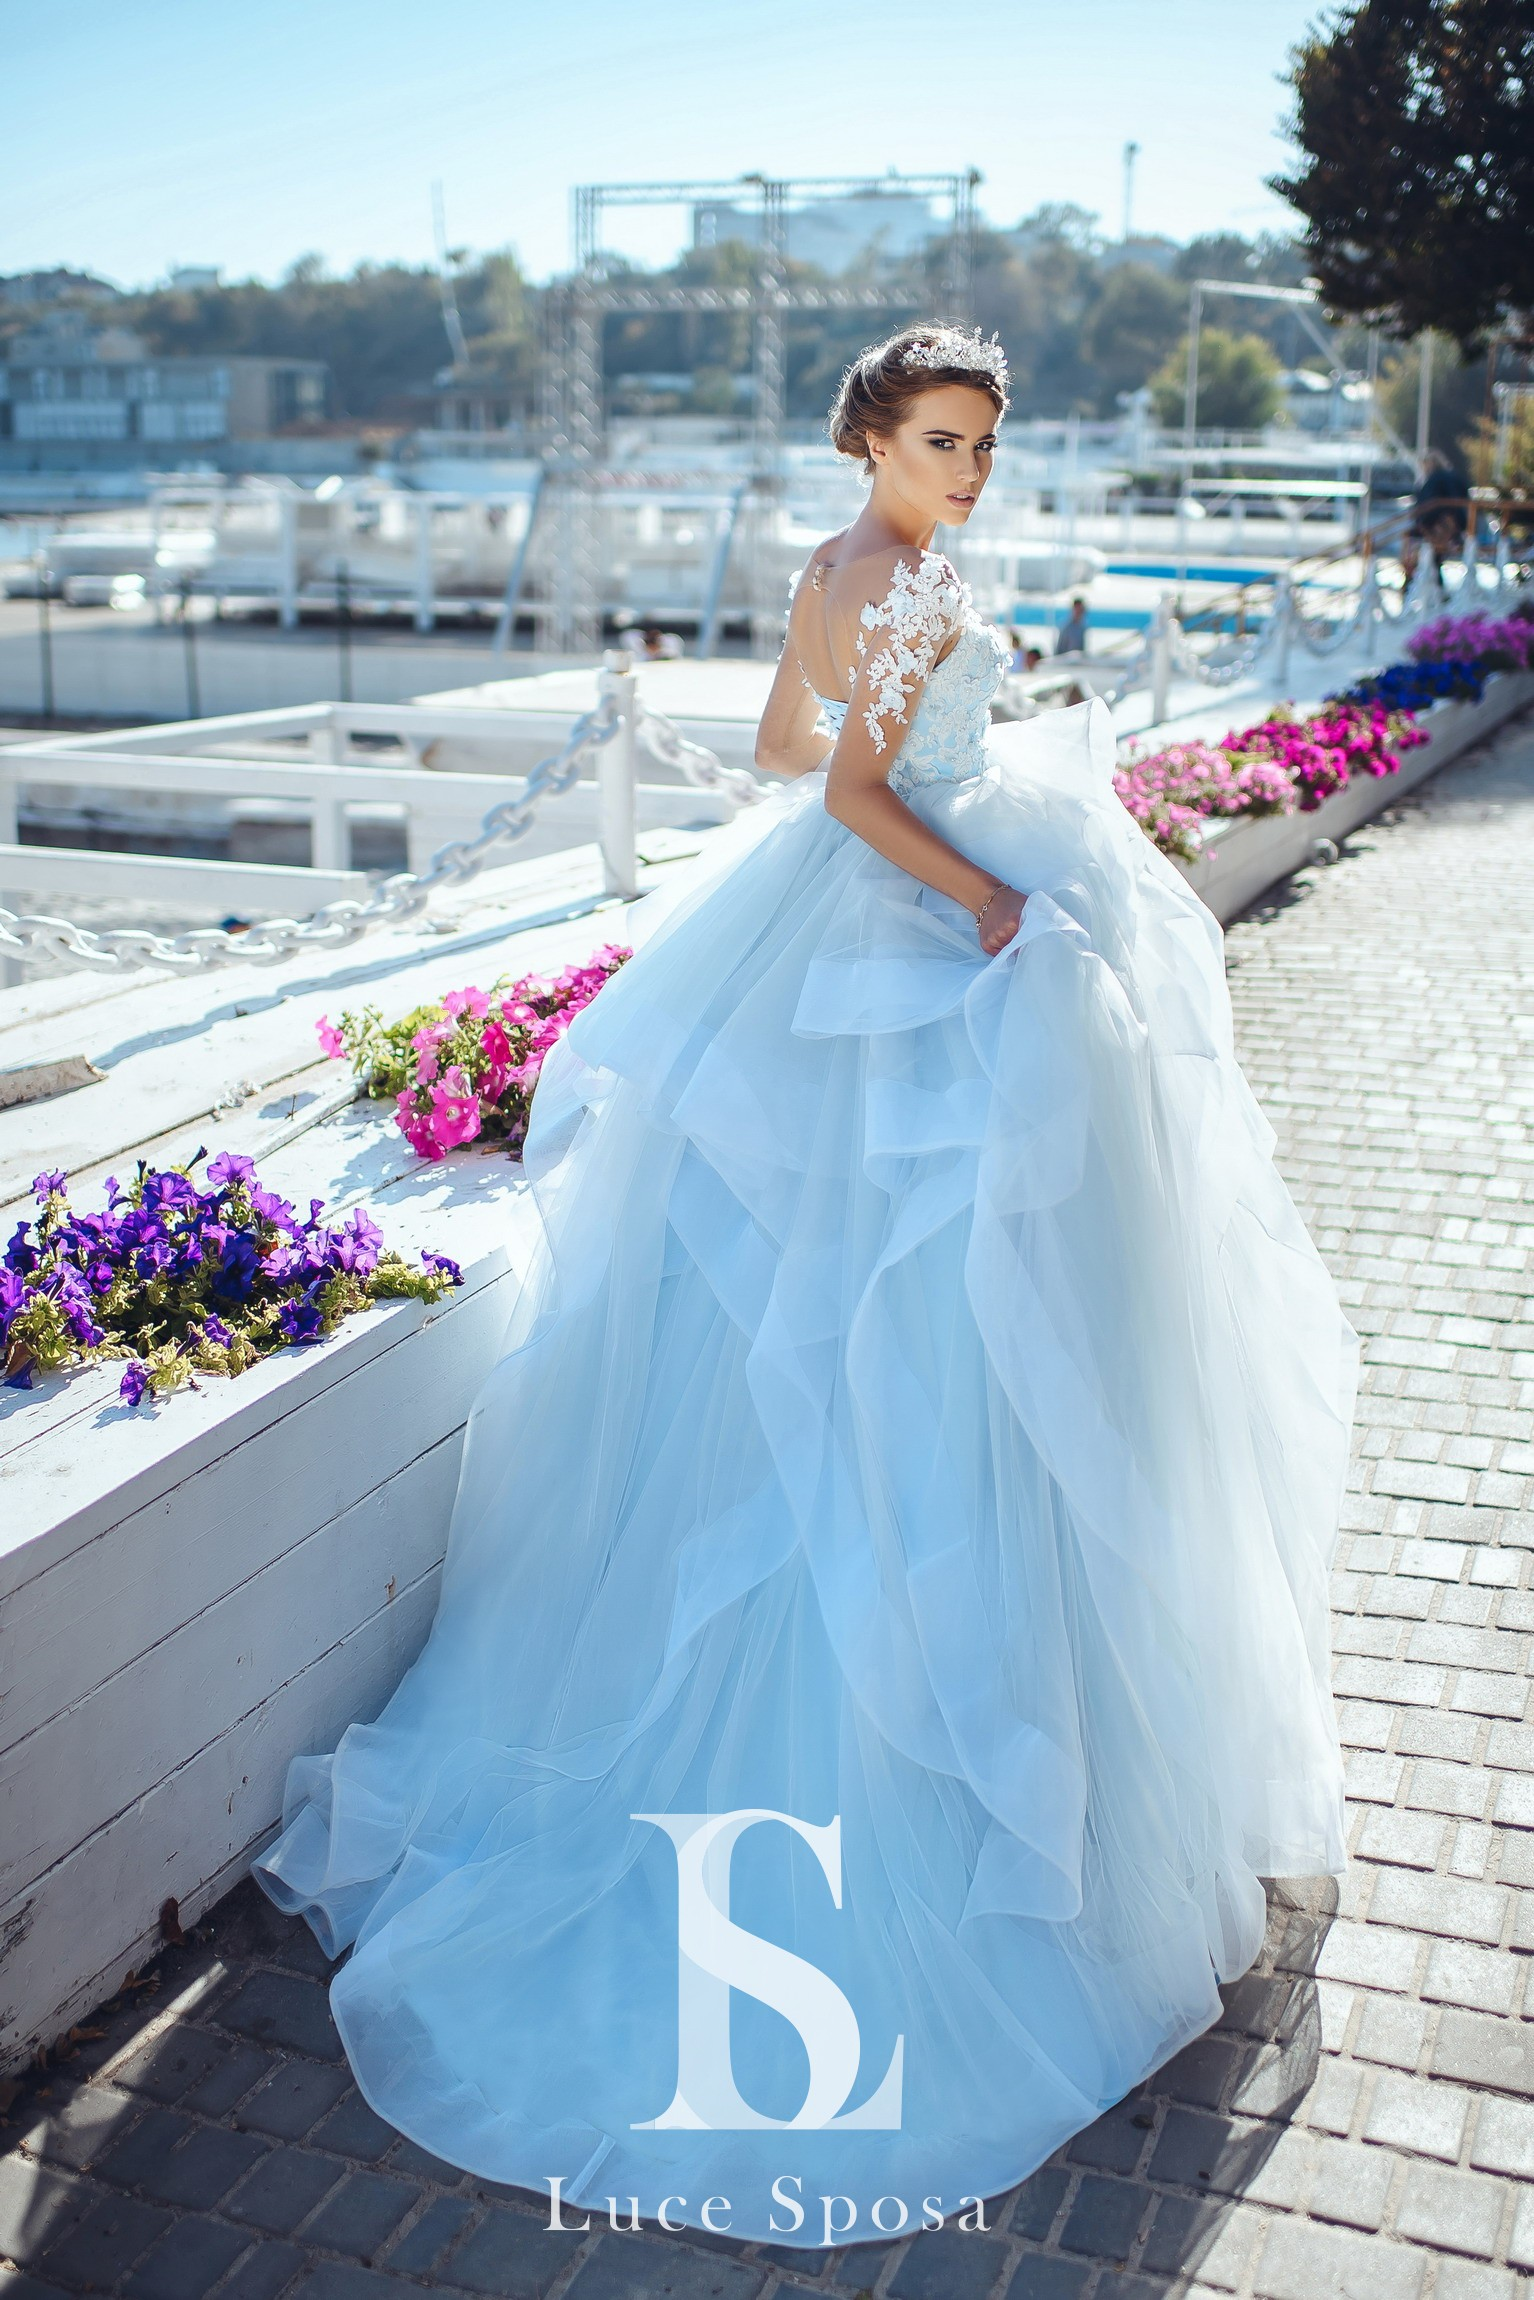 https://lucesposa.com/images/stories/virtuemart/product/ABB_48015.jpg